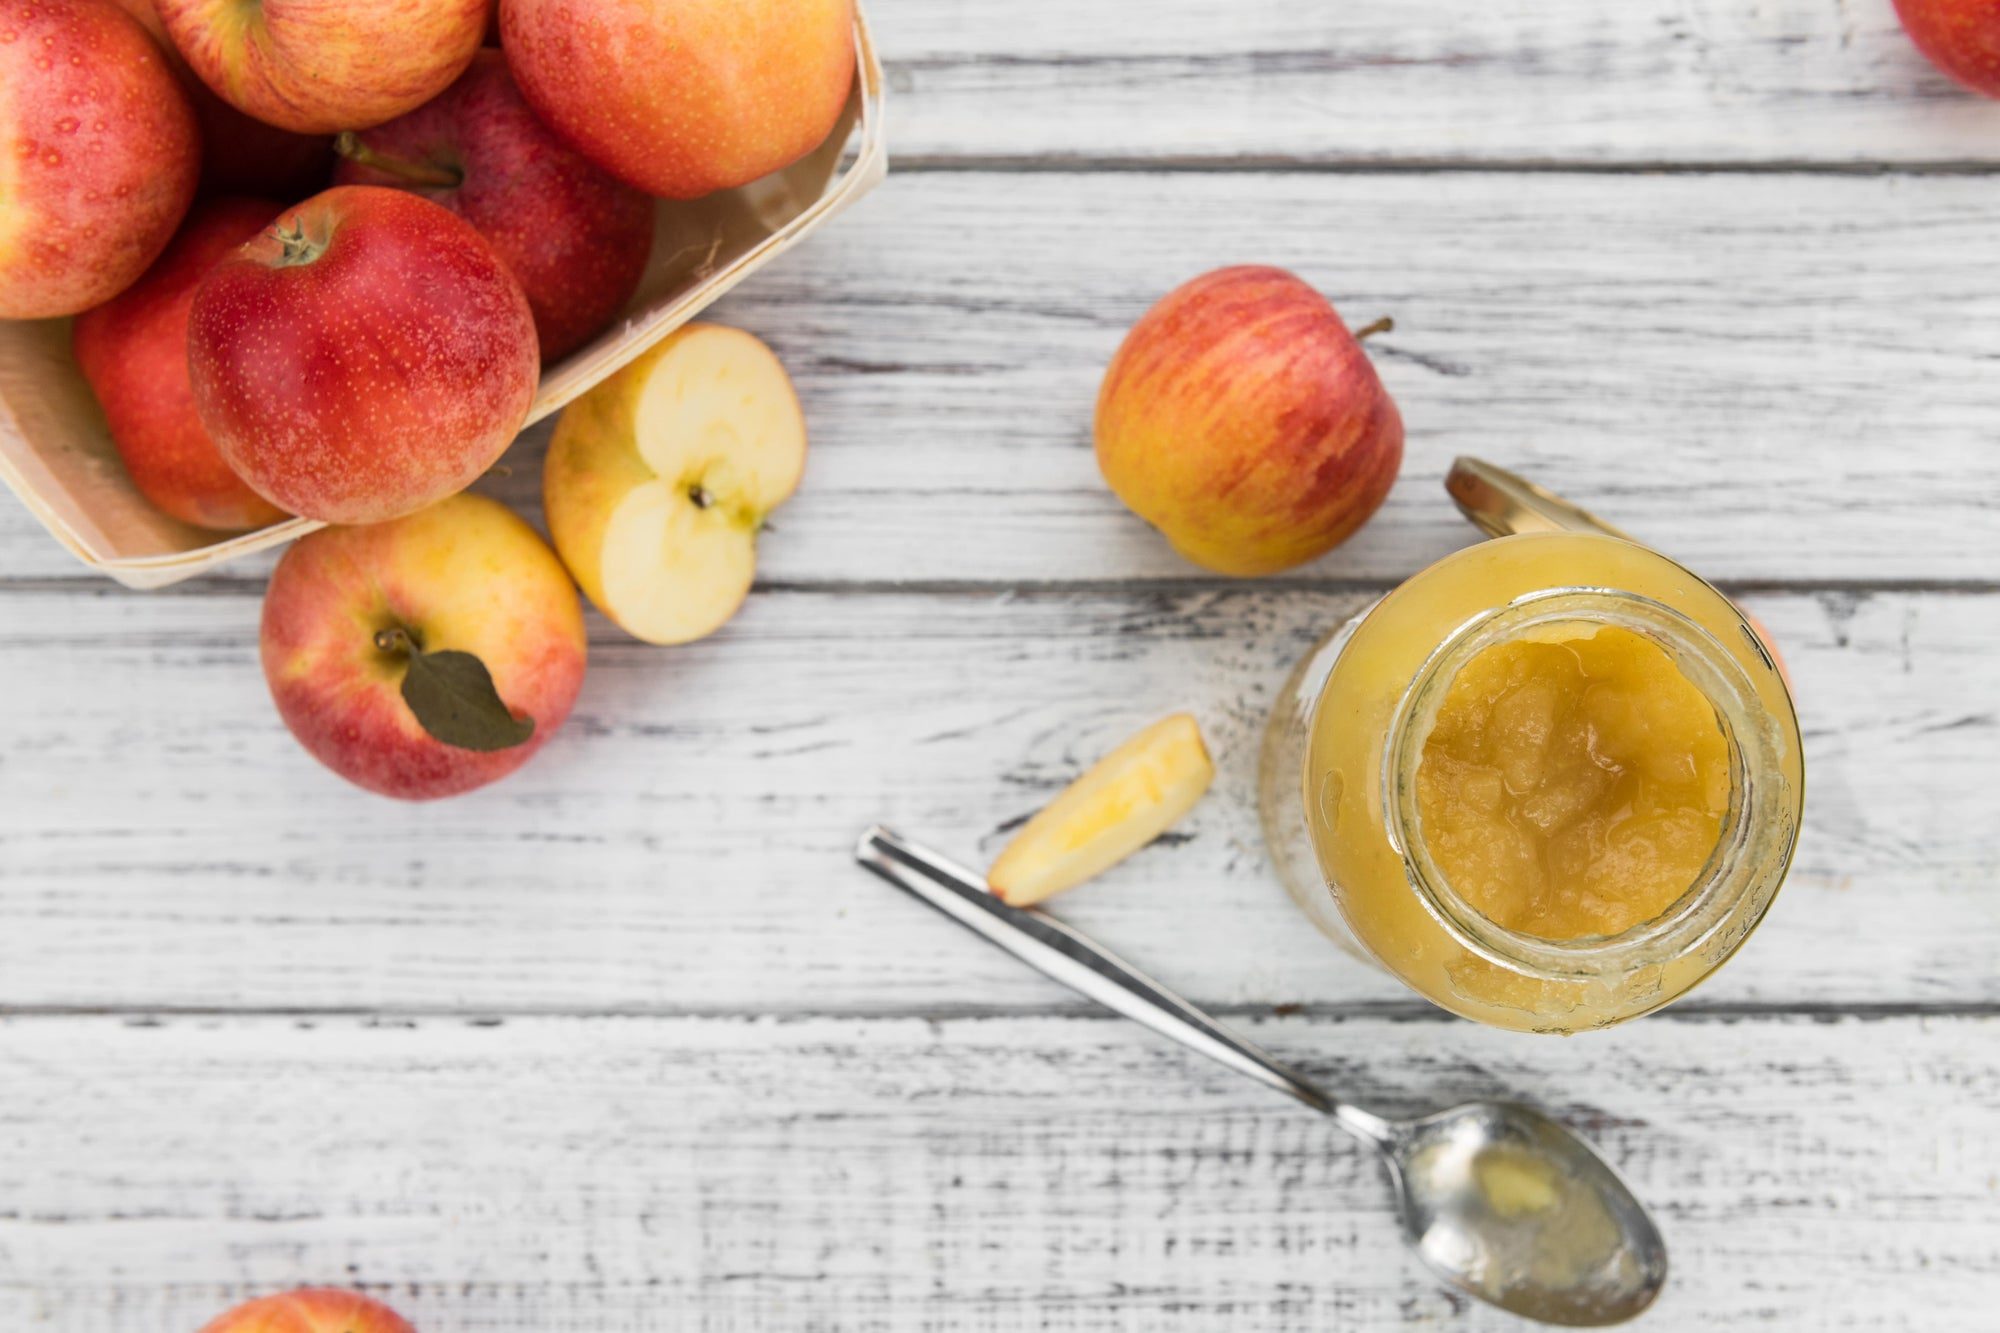 5 Quick and Healthy Apple Recipes